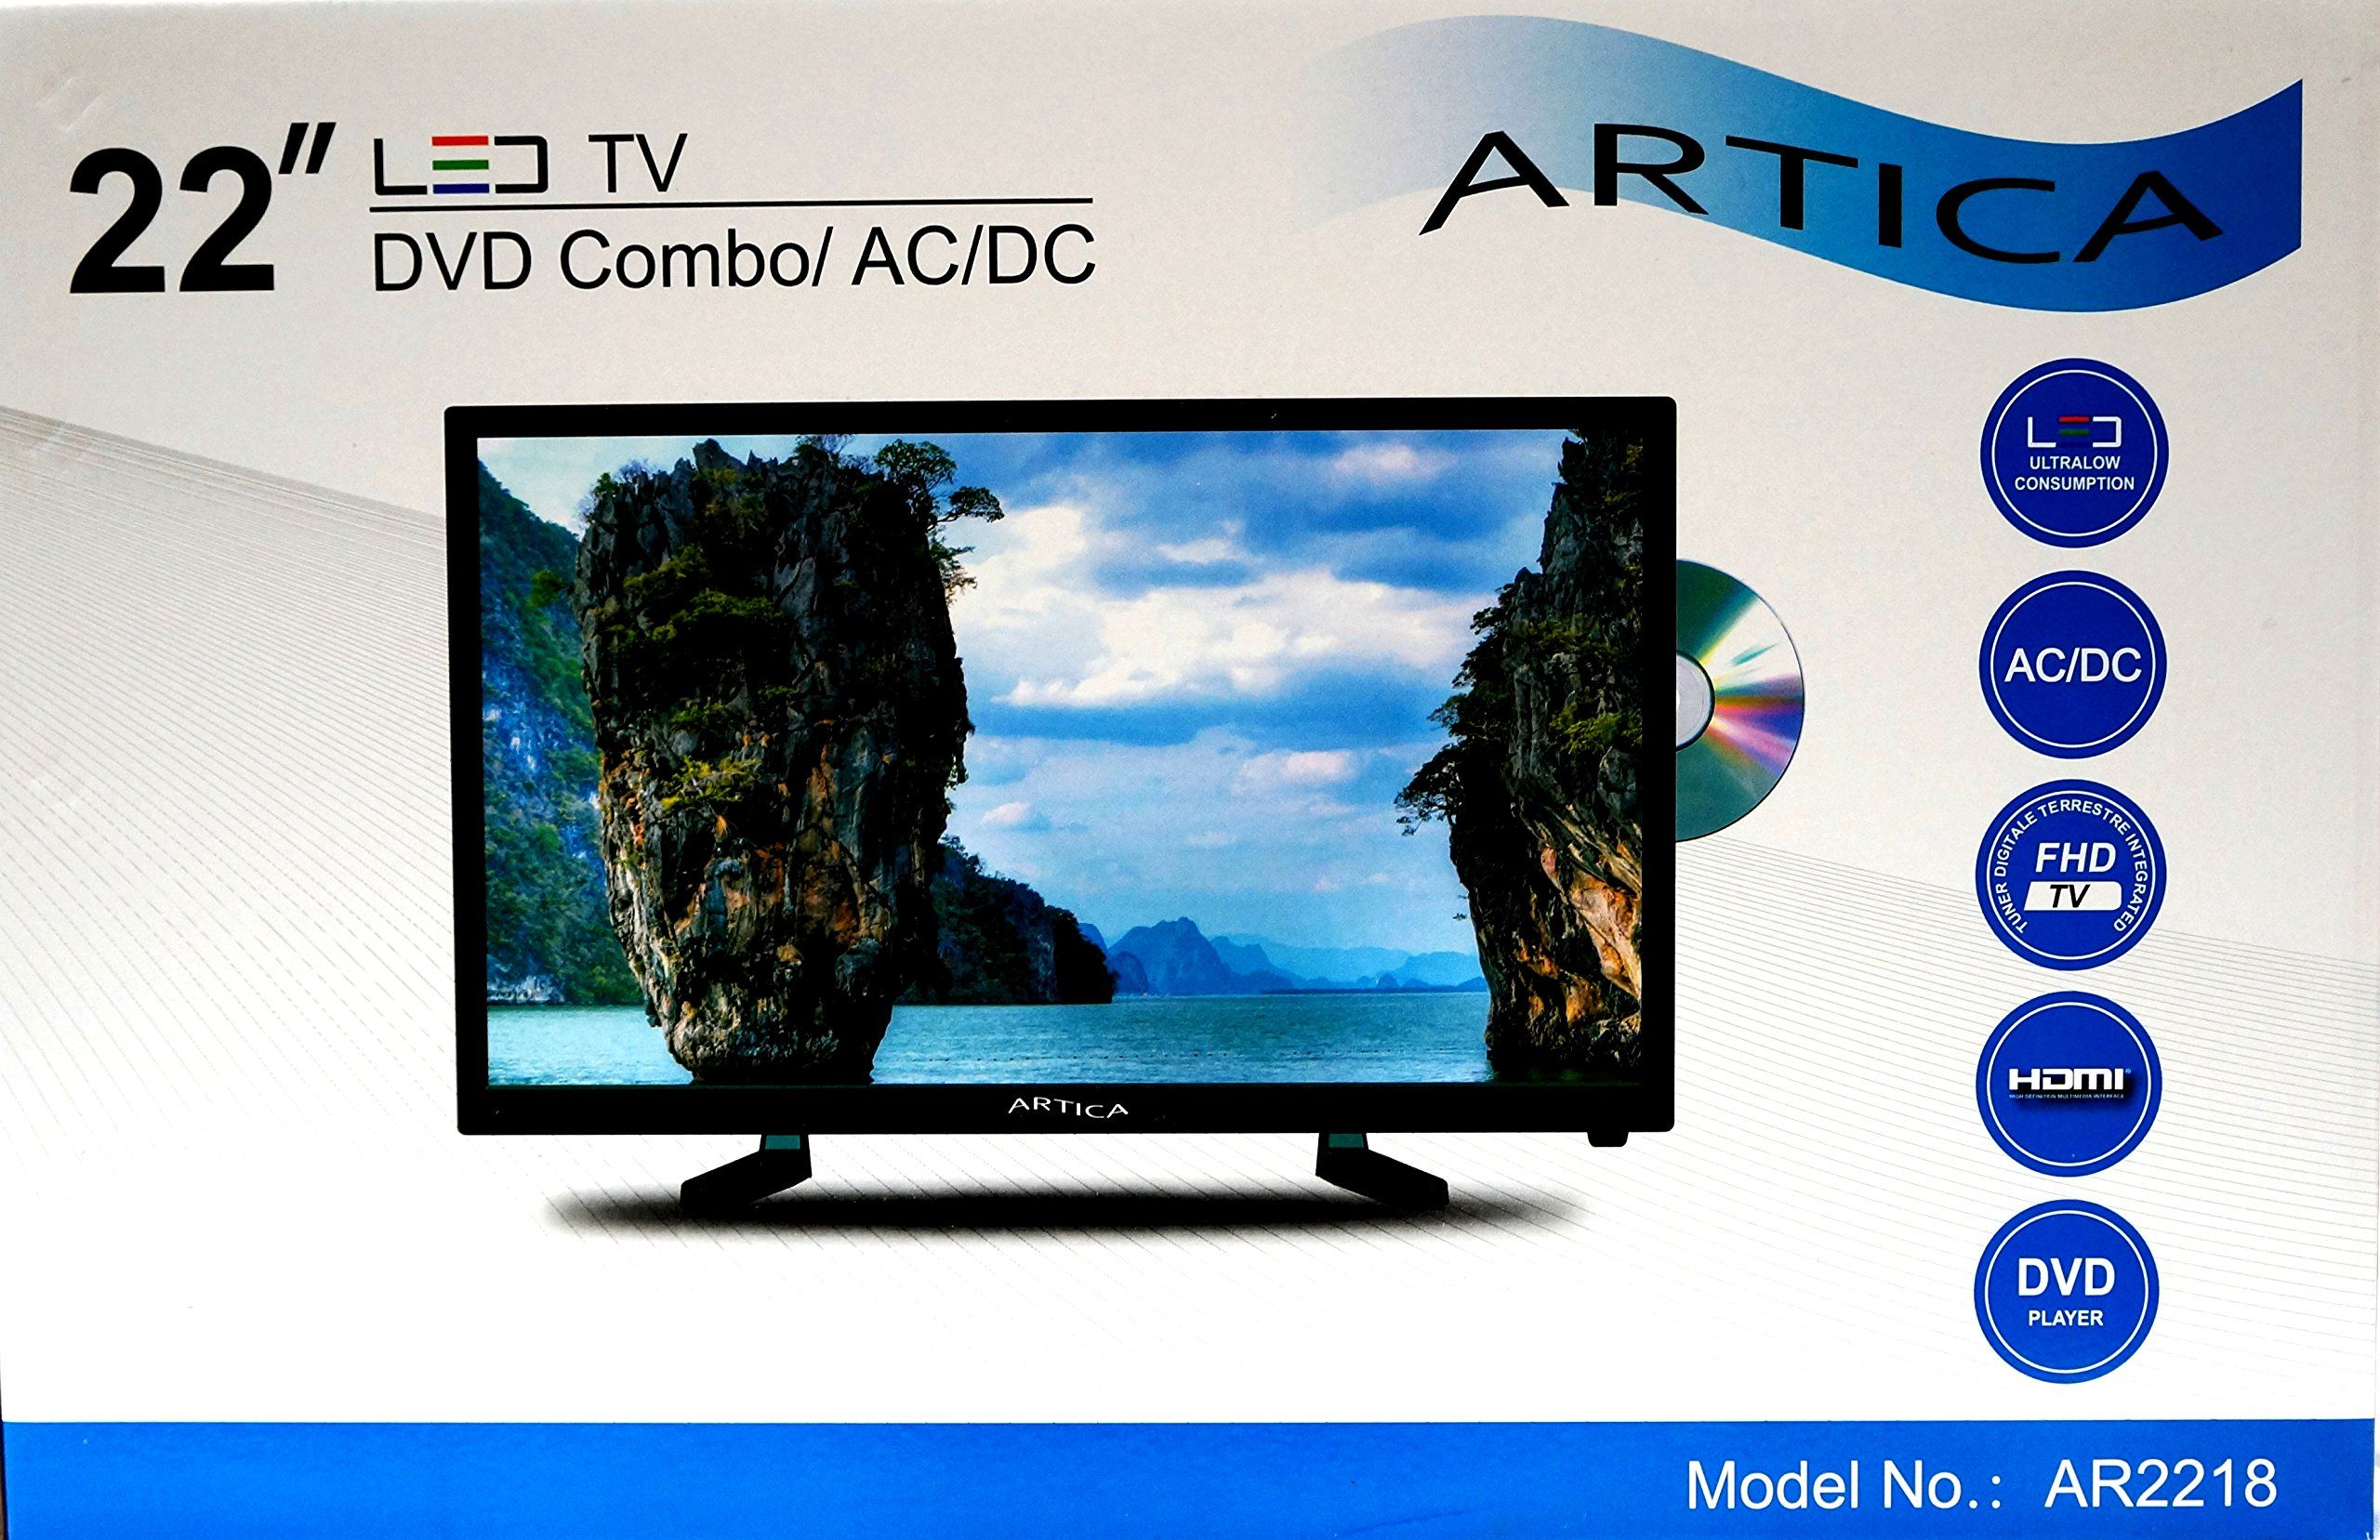 Artica Ar2218 22 39 39 Inch Led Tv With Dvd Player Hd Combo Digital Analog Ac Dc 12v Dvd Dvd Player Led Tv